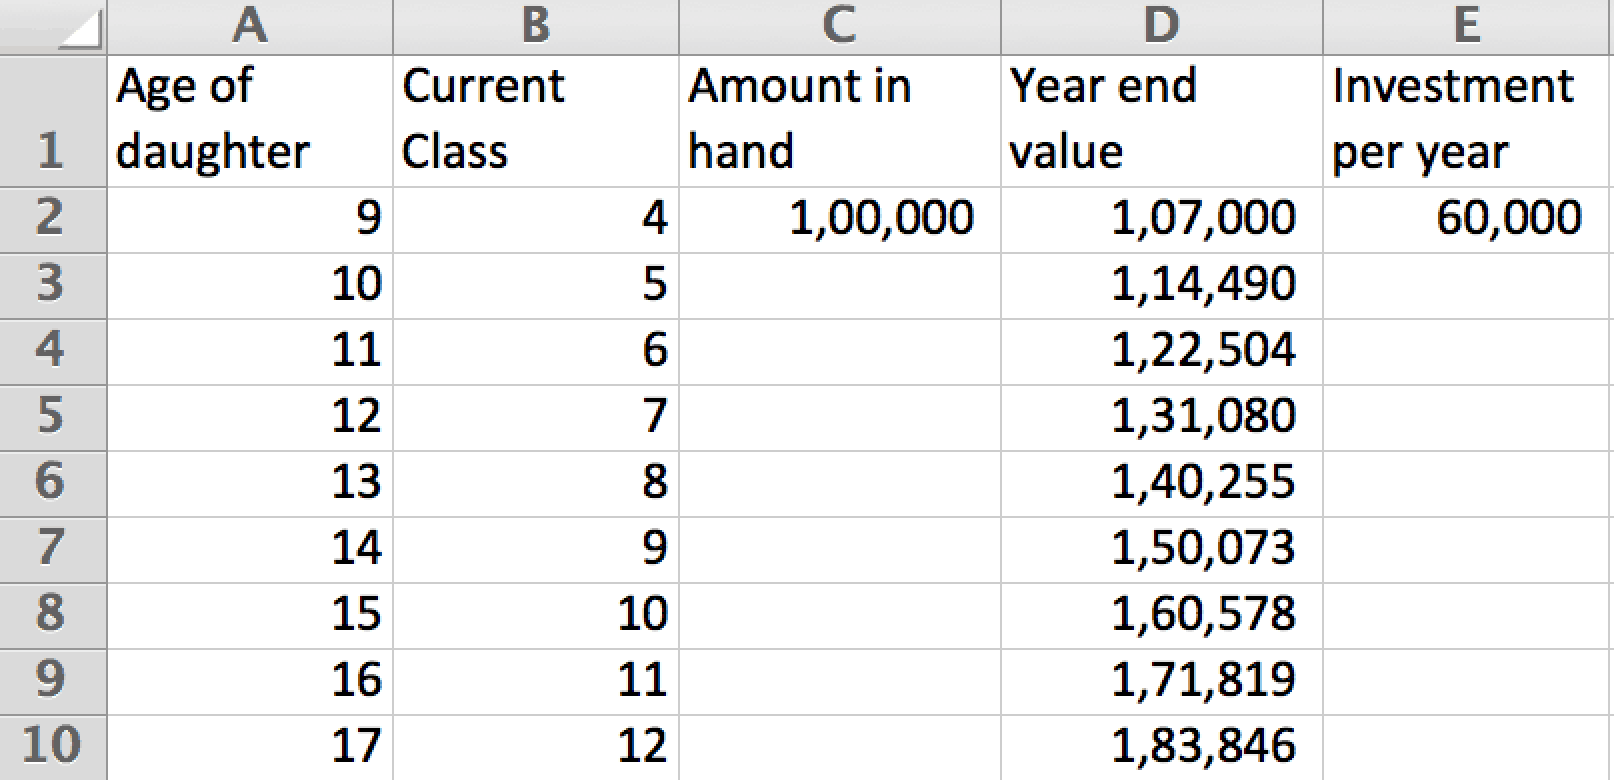 Growth of the amount in hand at 7% a year